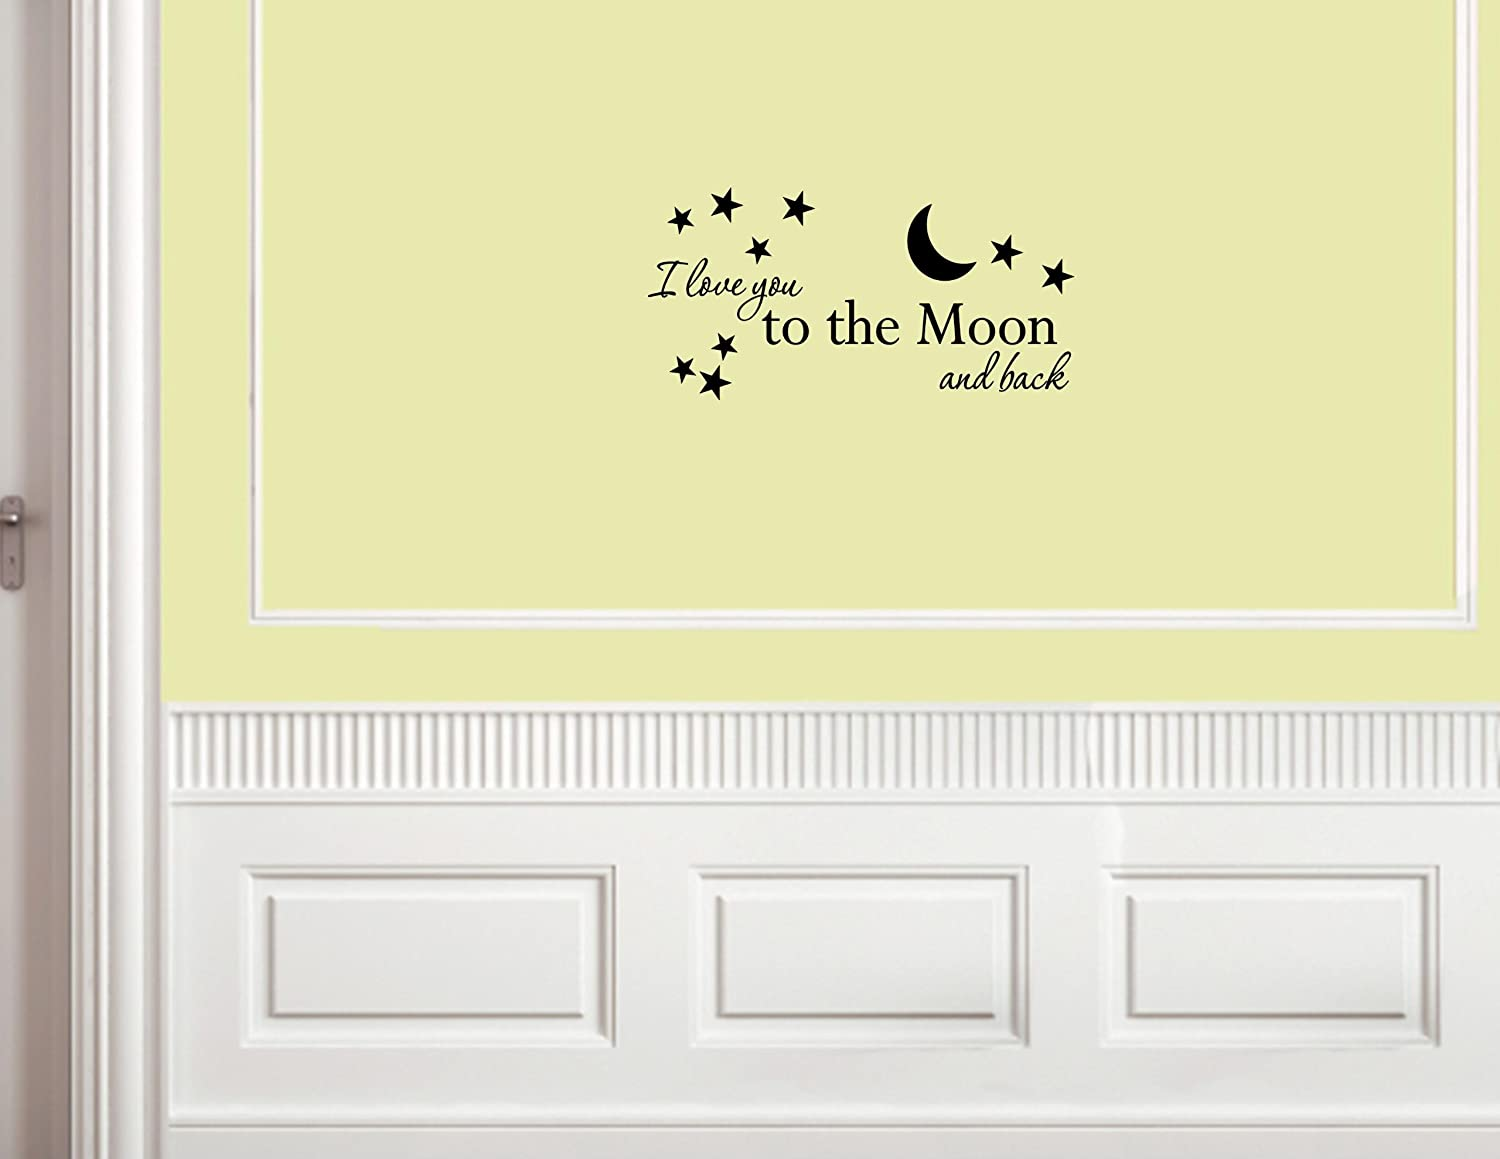 Amazon.com: I love you to the moon and back - Vinyl wall decals ...